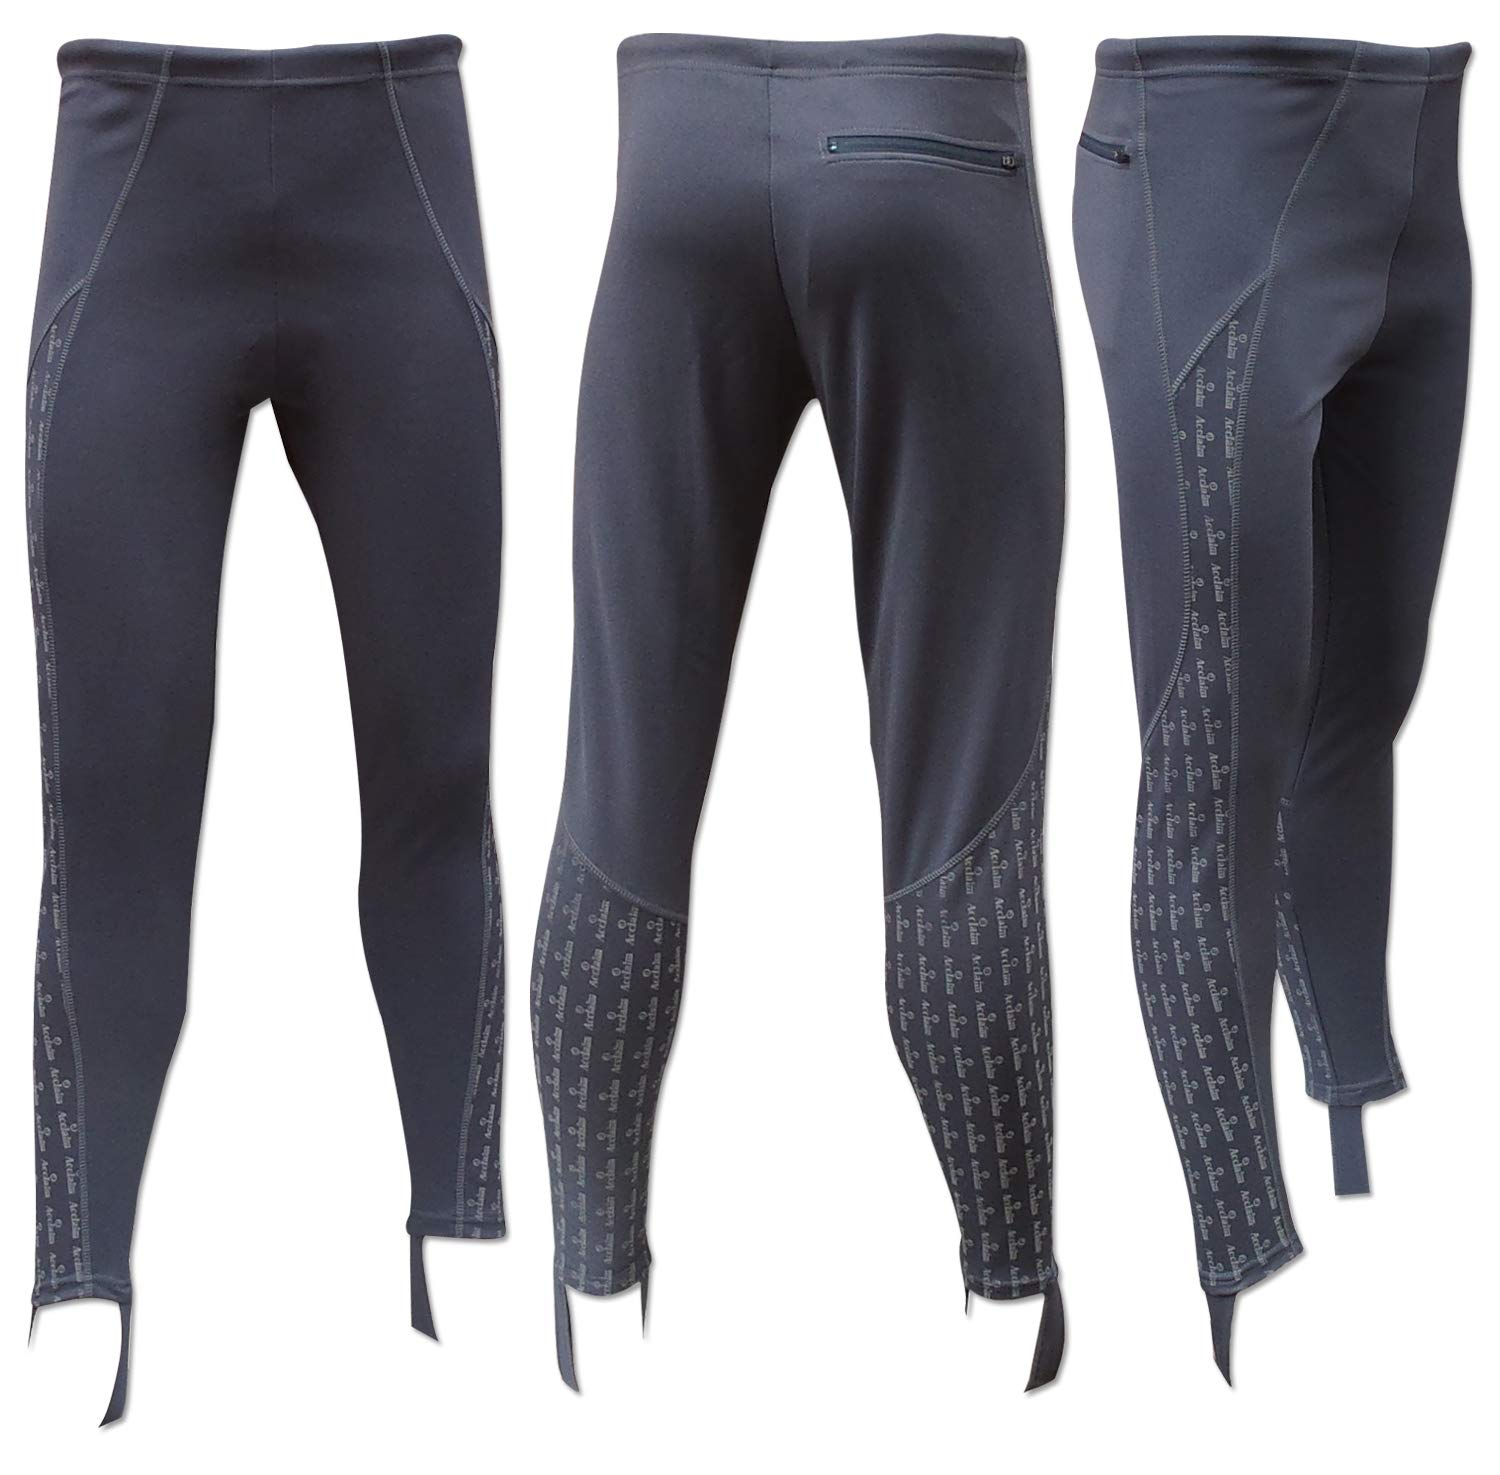 ACCLAIM Fitness Mens Black Cycle Style Lycra Short Running Fitness Training